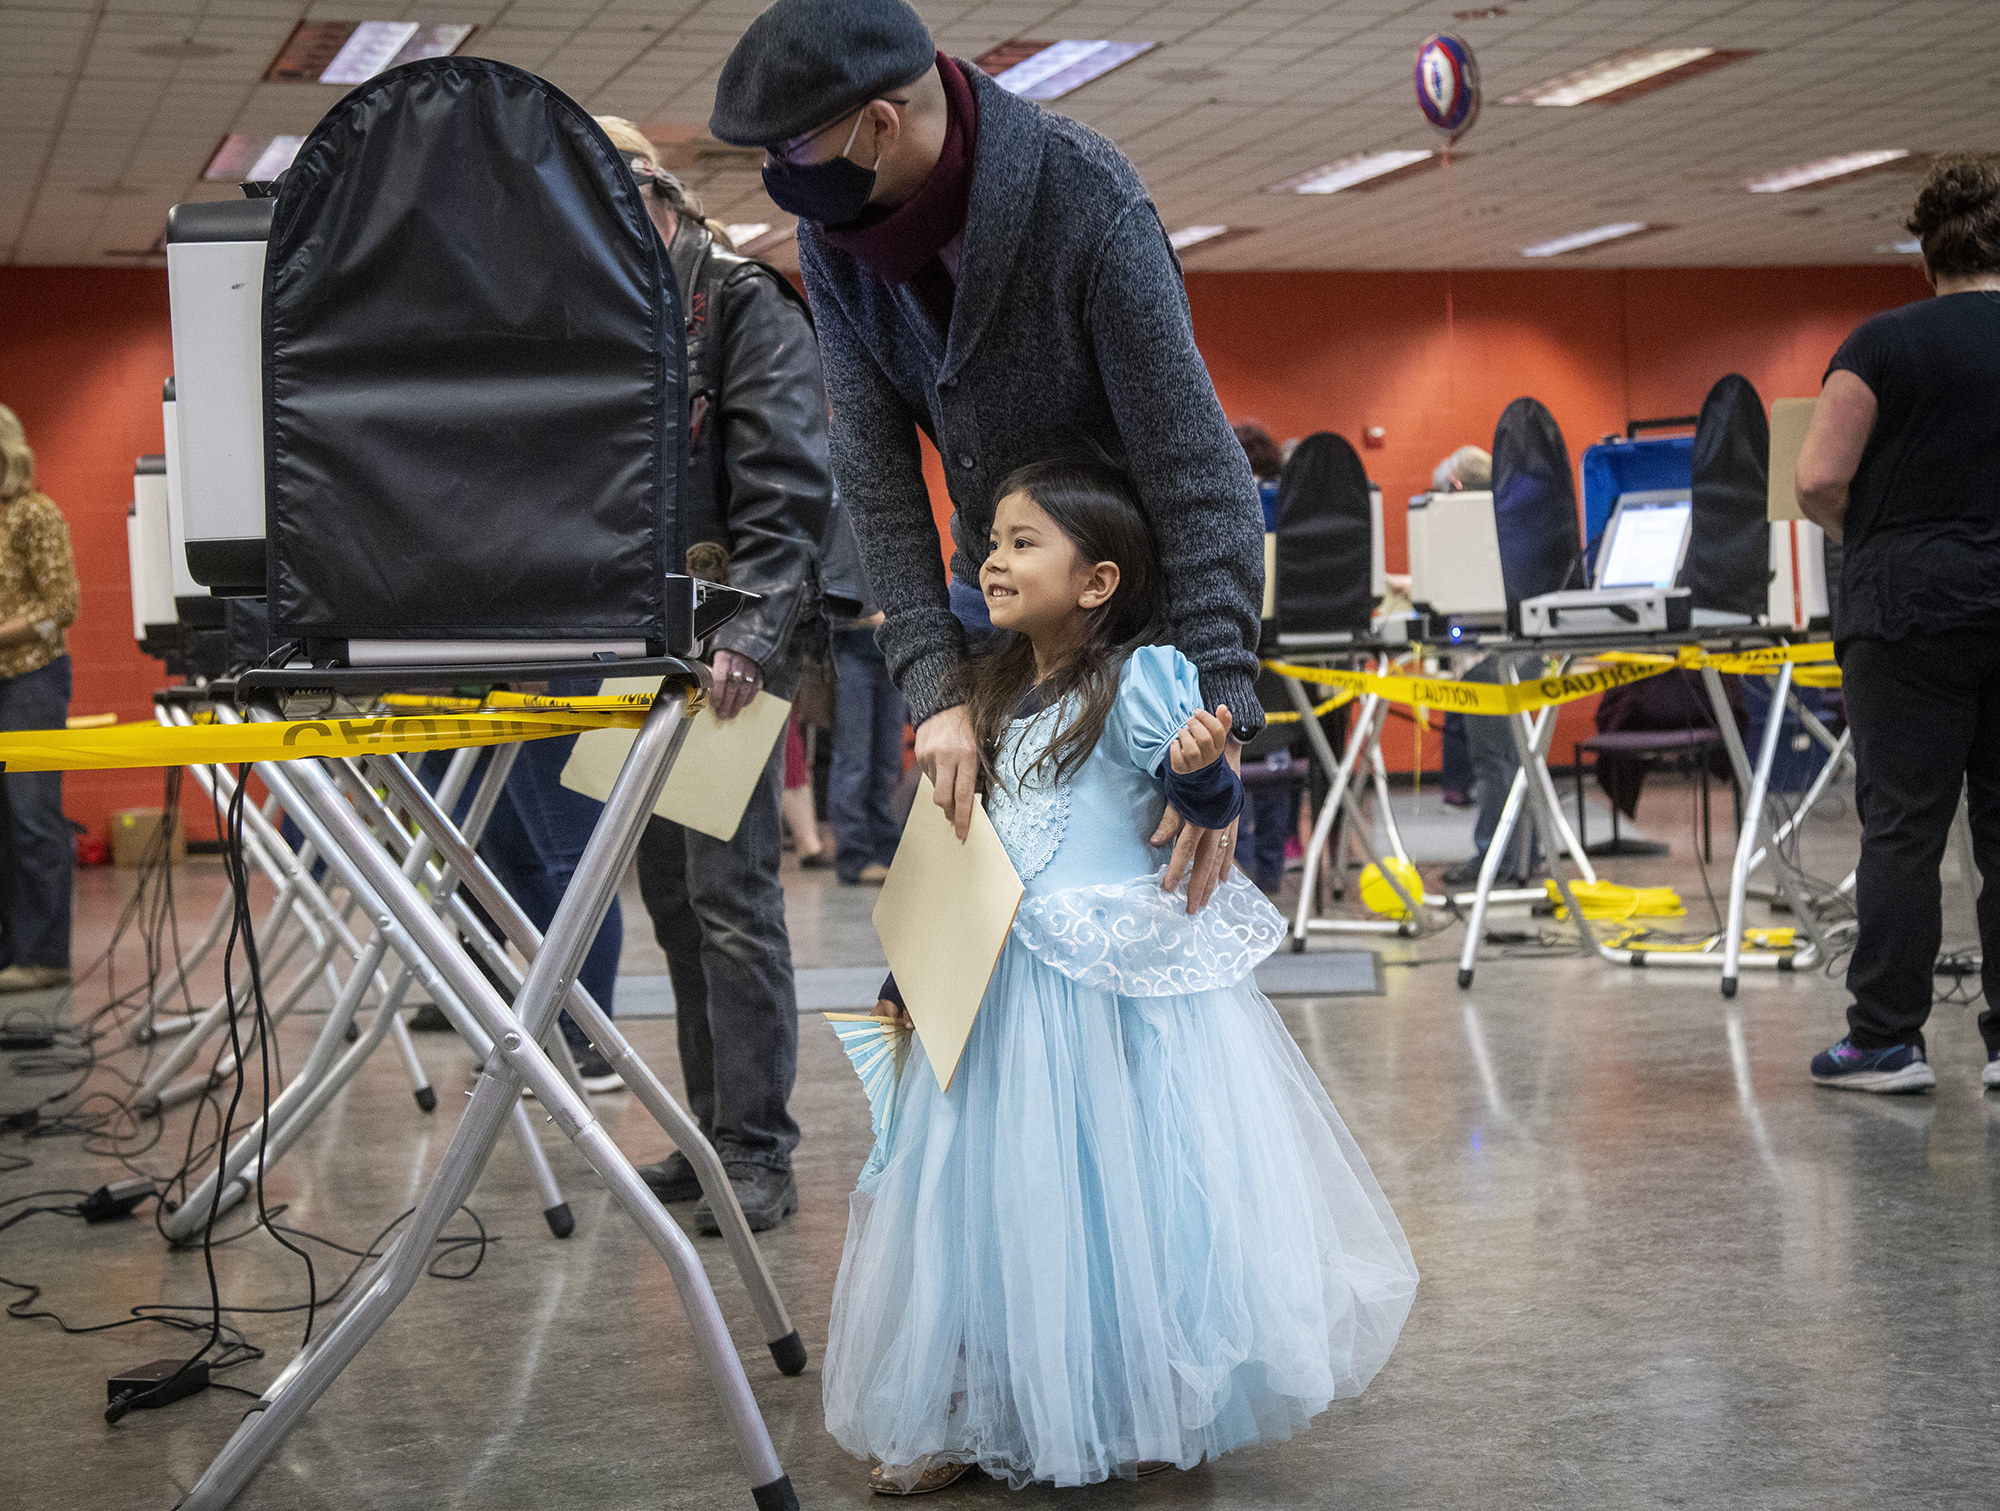 A young girl in a princess costume with her dad at the polls